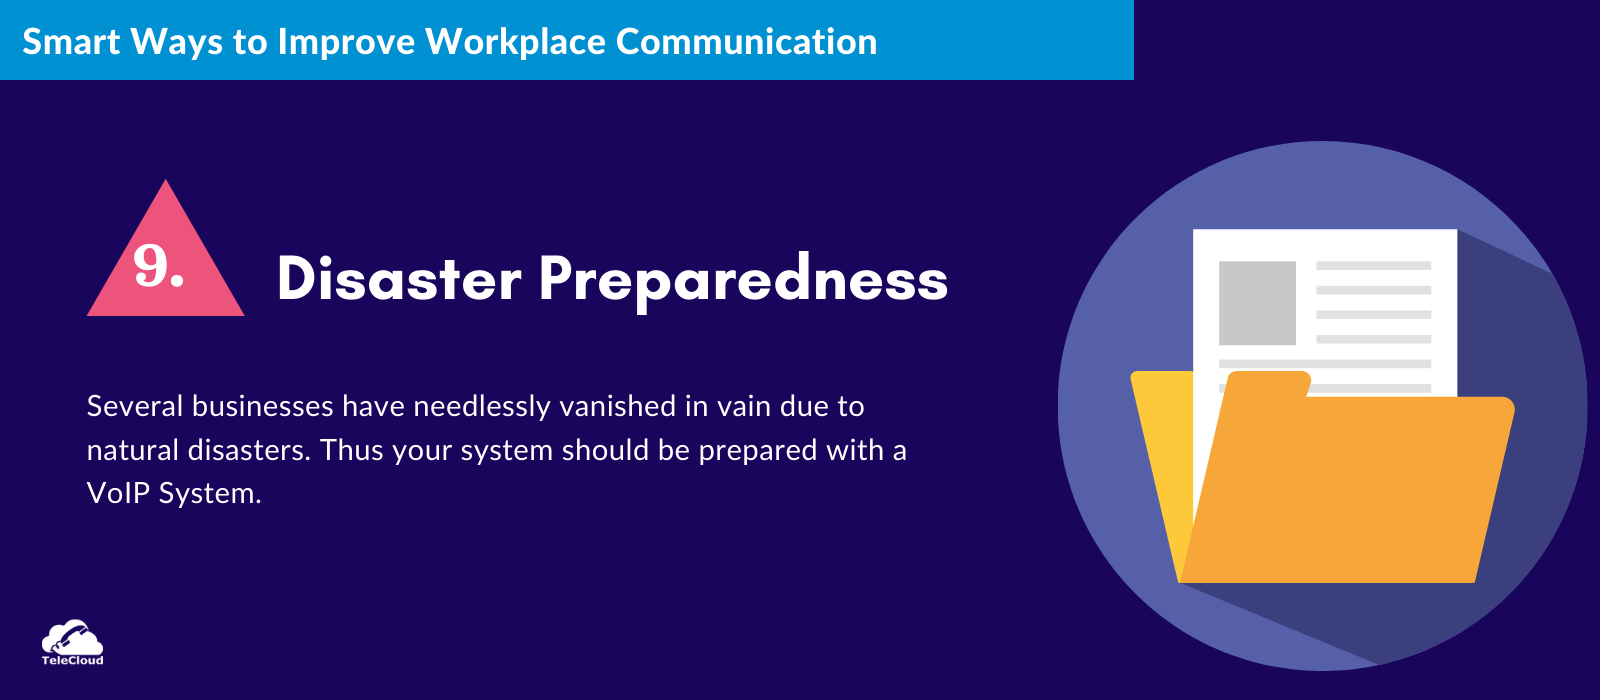 Disaster Preparedness to improve business communication - TeleCloud